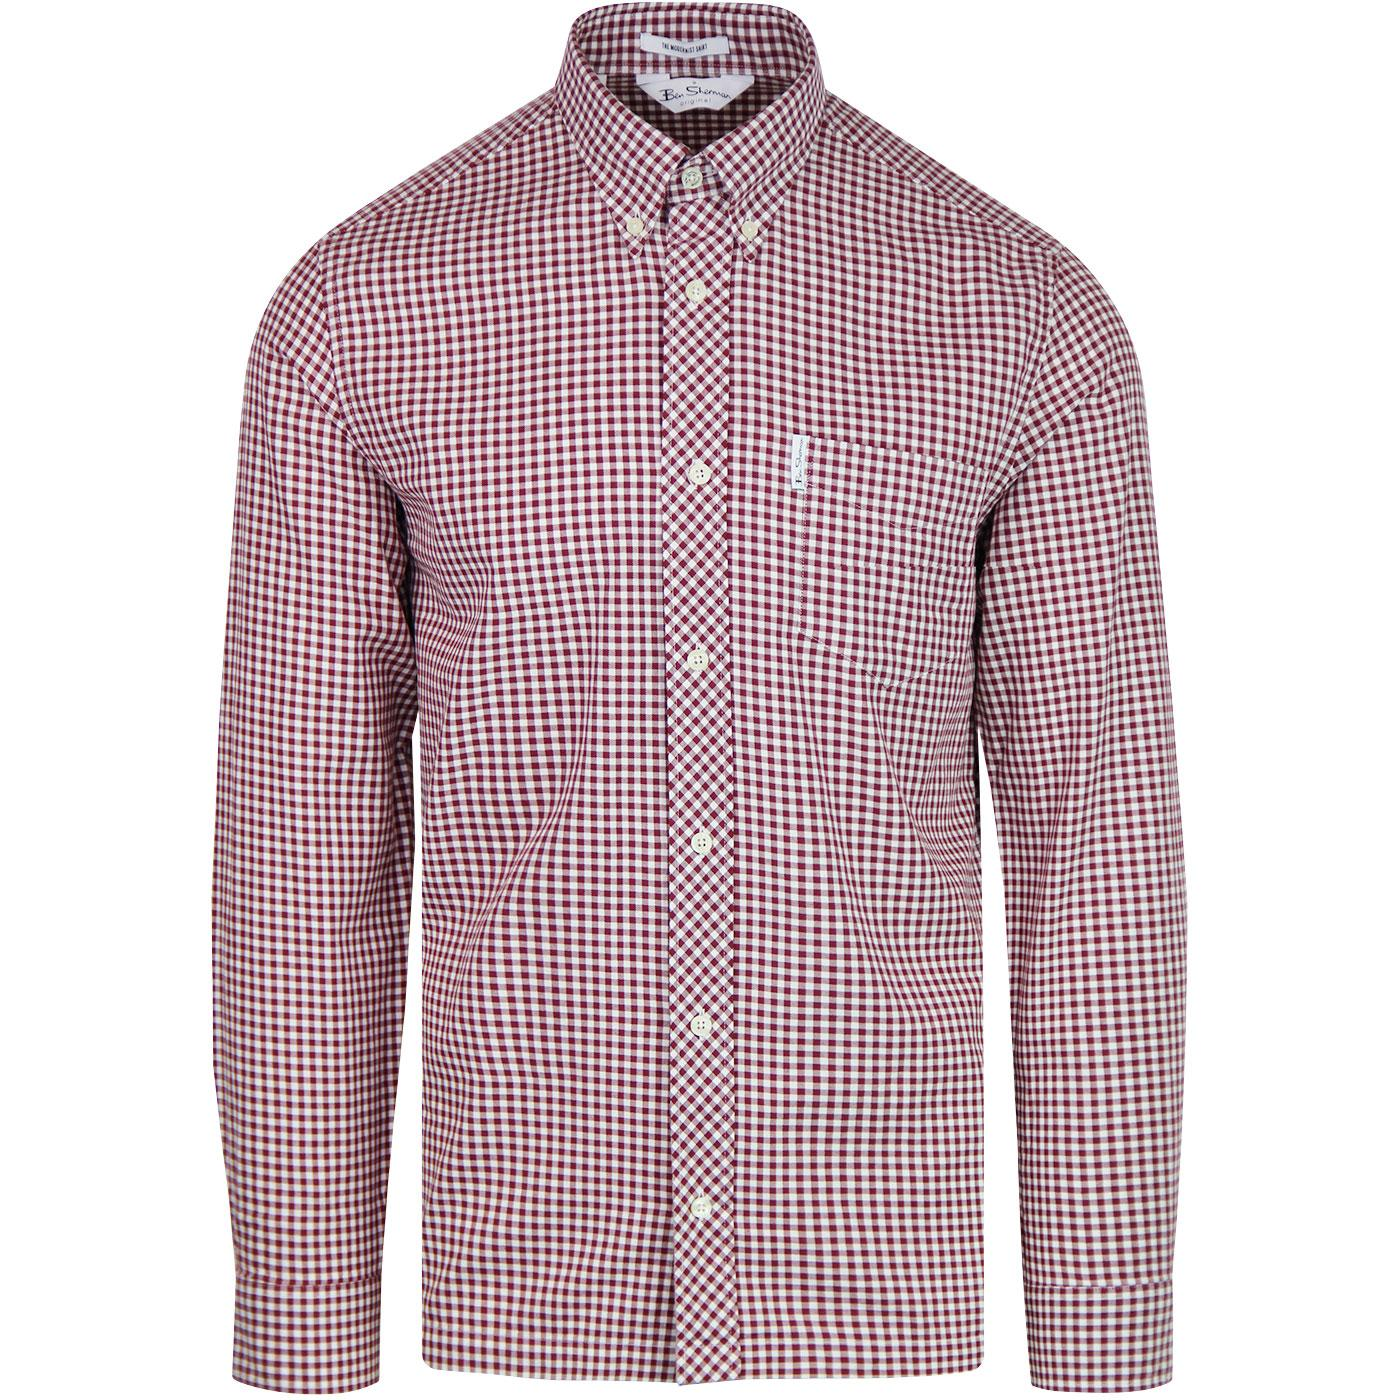 BEN SHERMAN Archive Modernist Check Shirt WINE